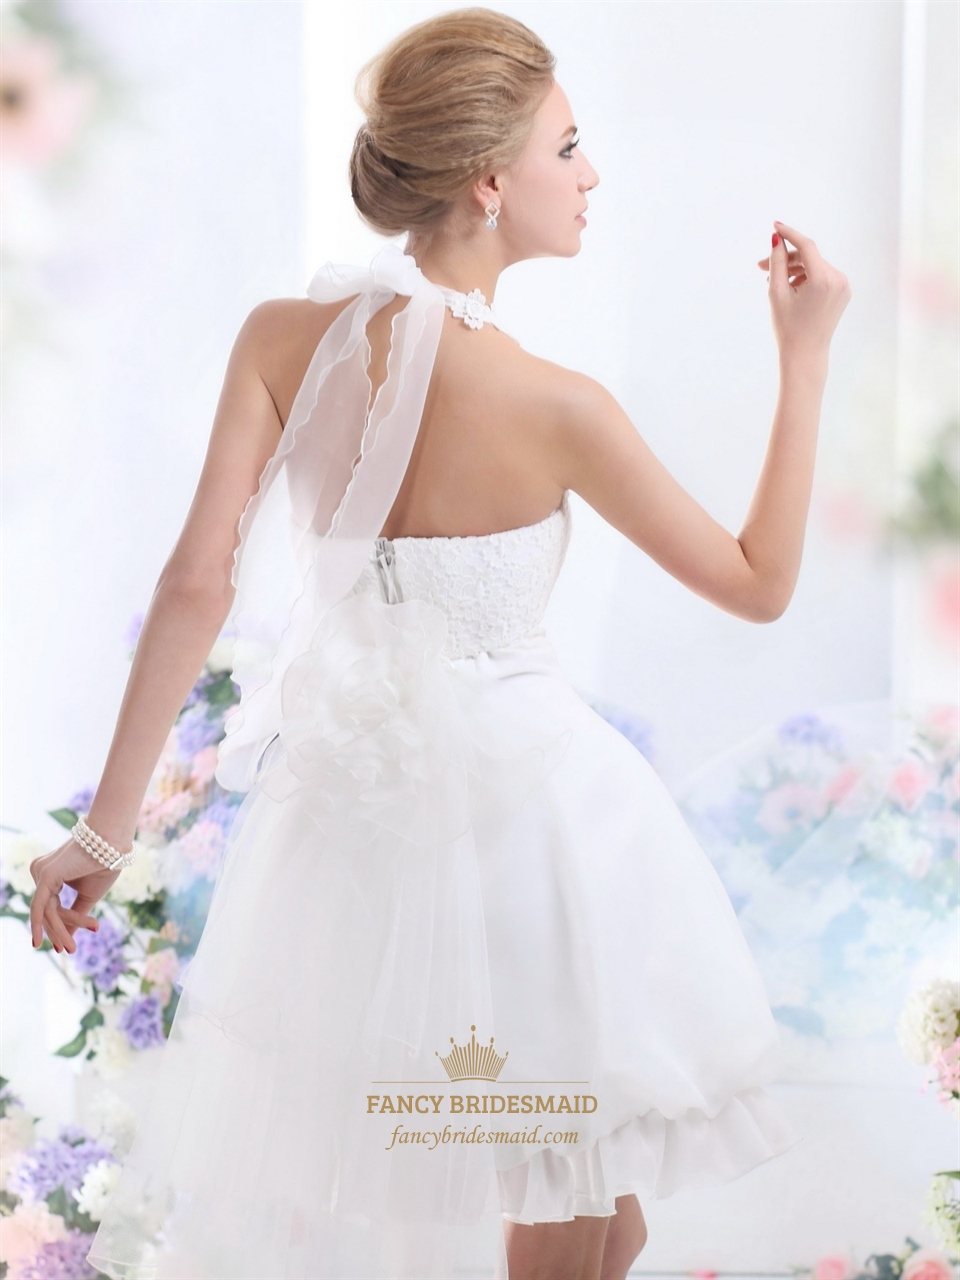 White Short Halter Neck Wedding Dresses With Pearls And Lace Bodice ...